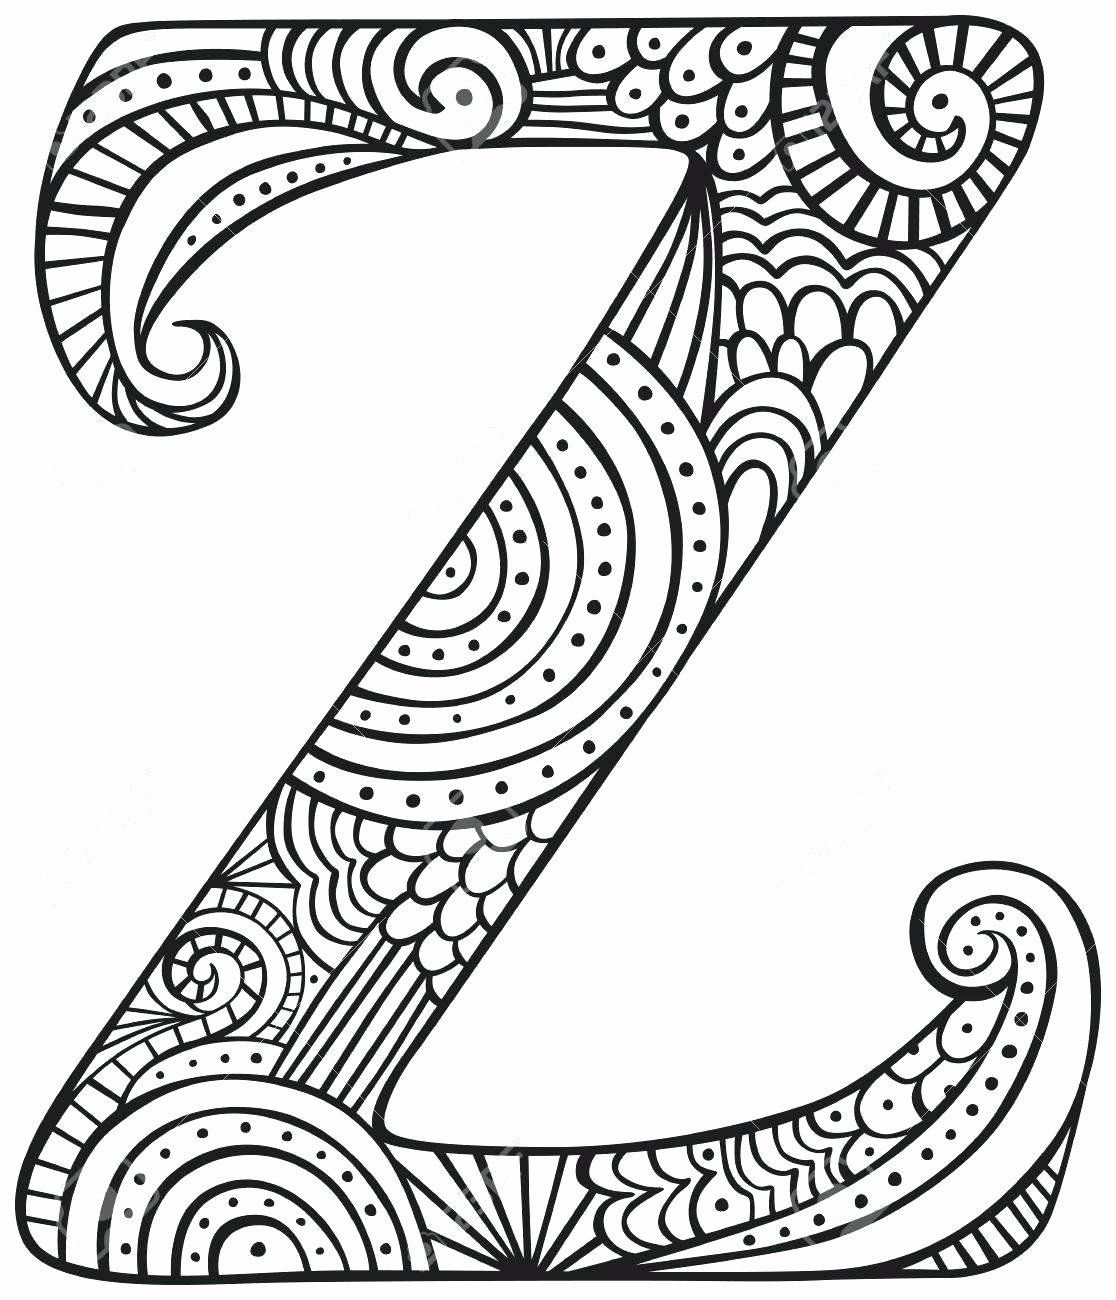 My Coloring Pages Capital Letters Lovely Letter Z Coloring Sheet Codeadventures Coloring Pages Coloring Sheets Colouring Sheets For Adults